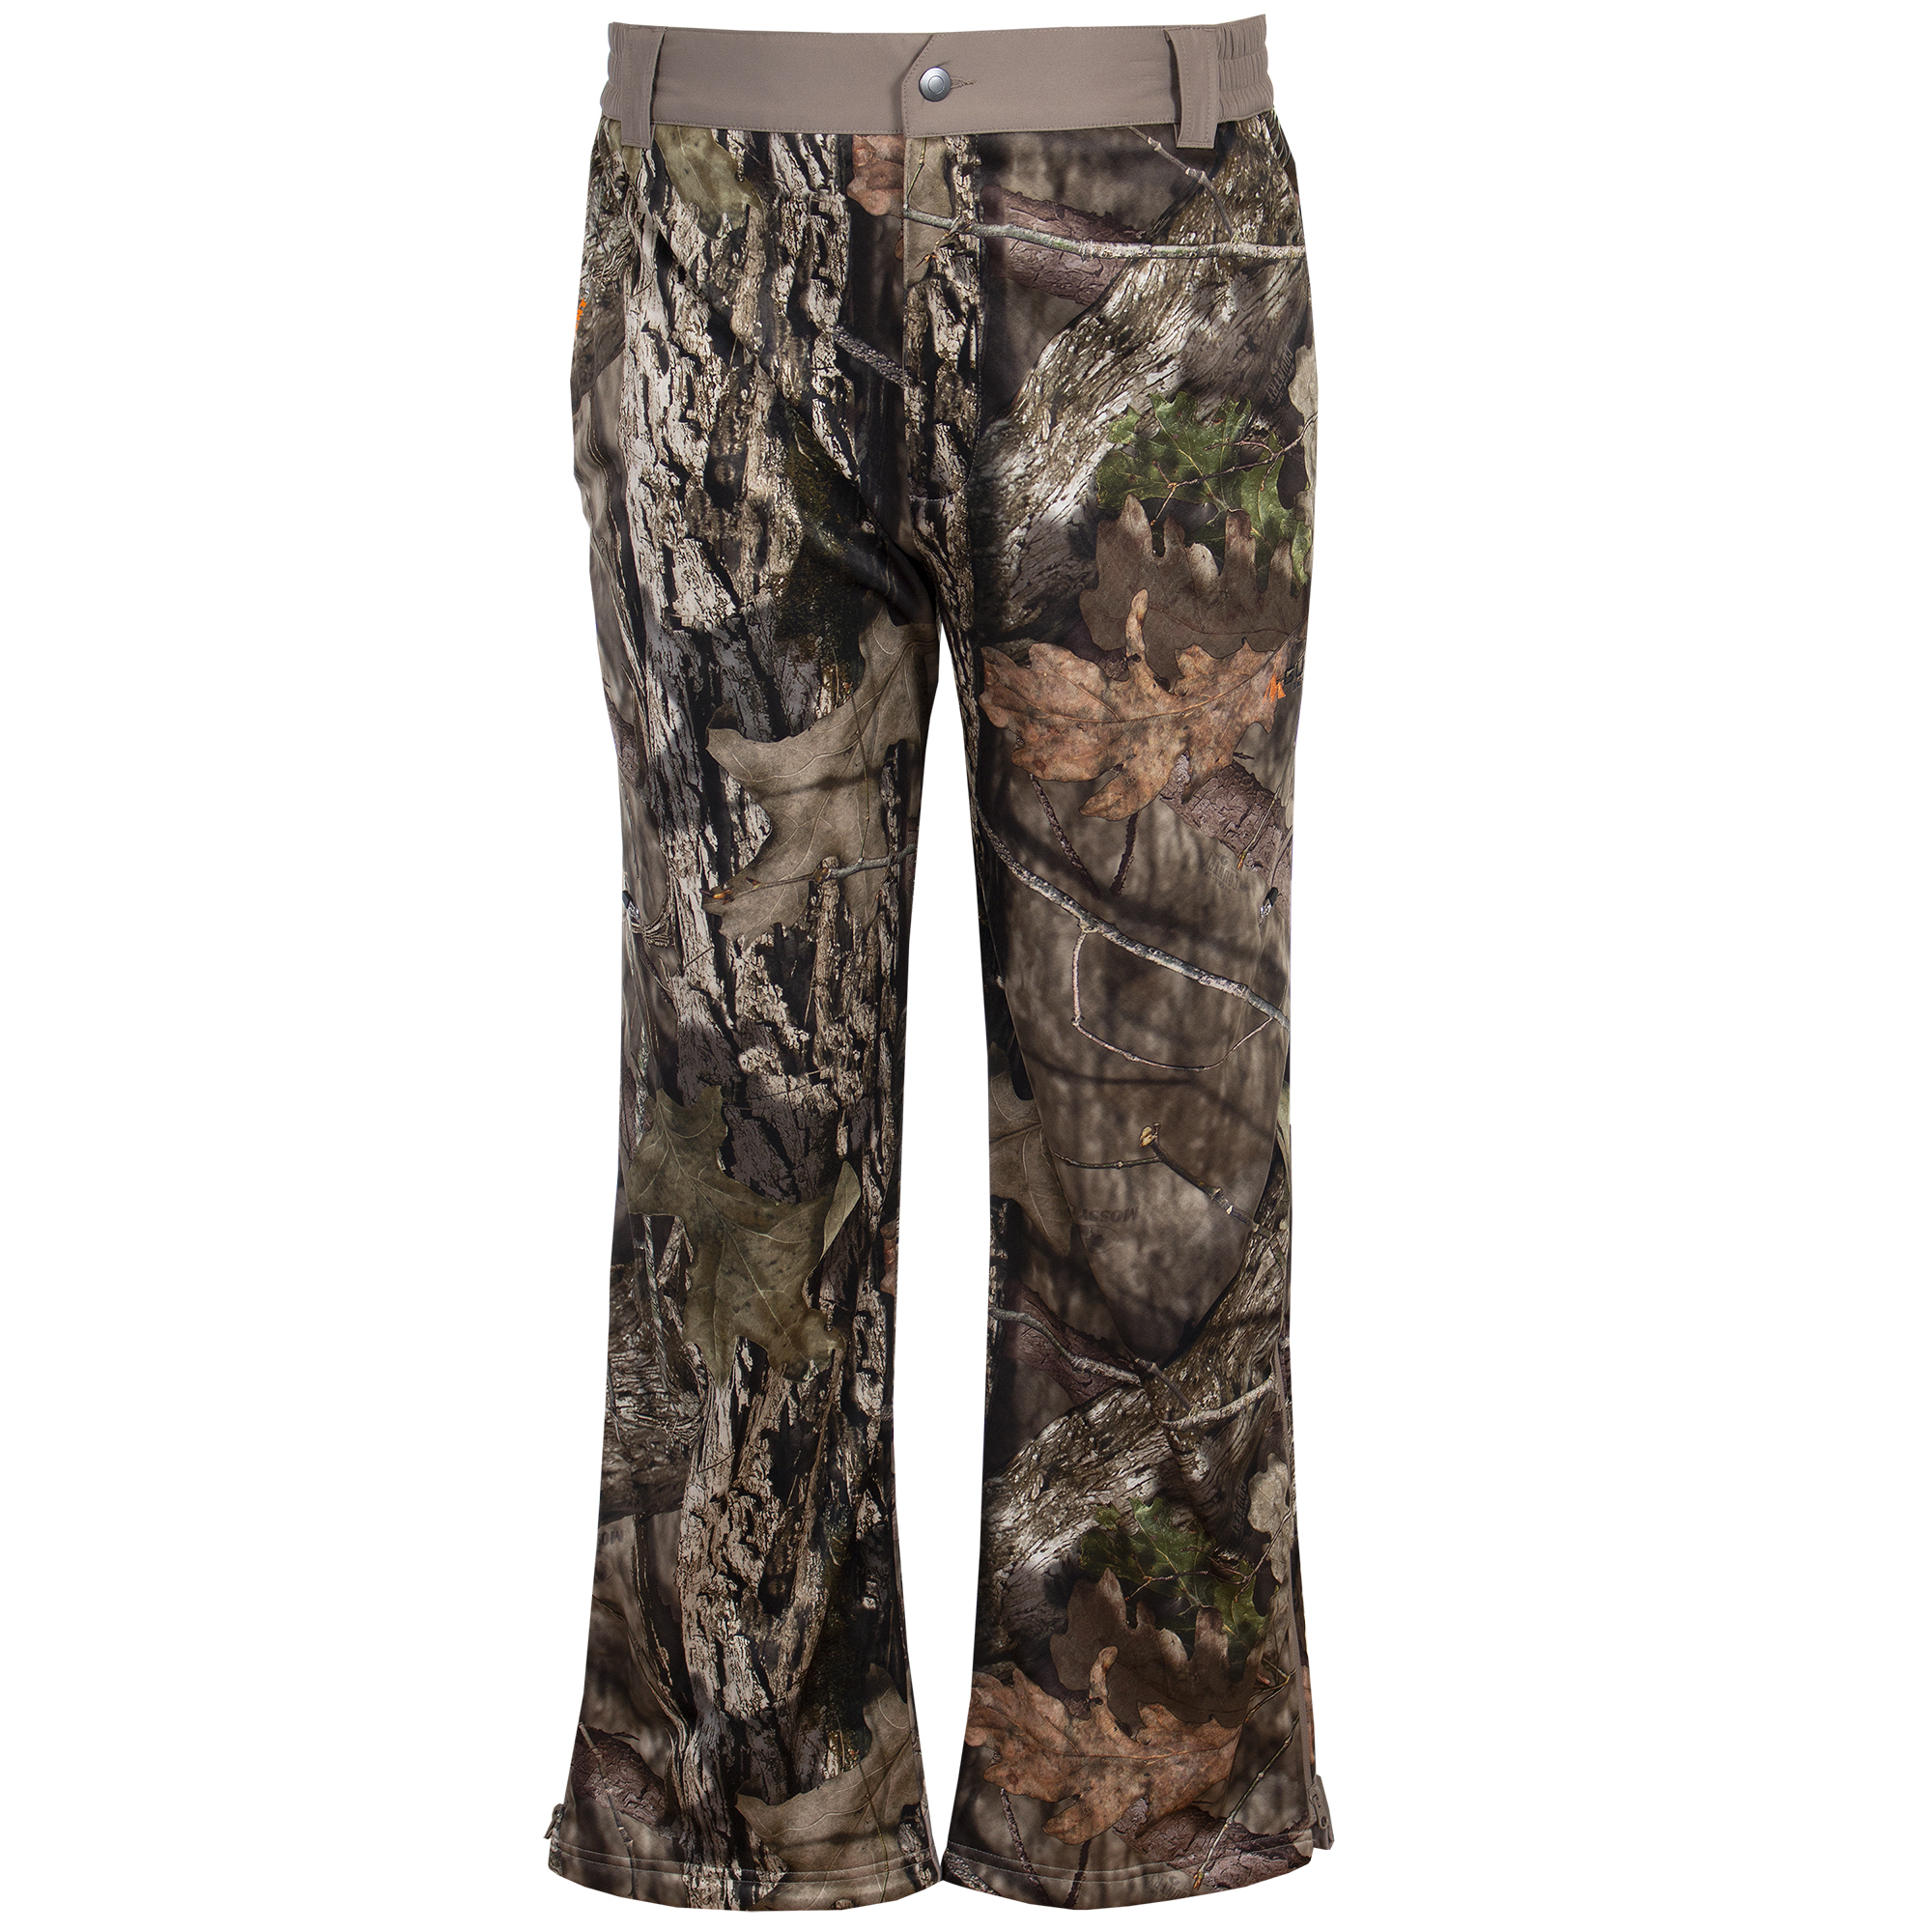 Habit Men's Camo Hunting Pant, Mossy Oak Break-Up Country